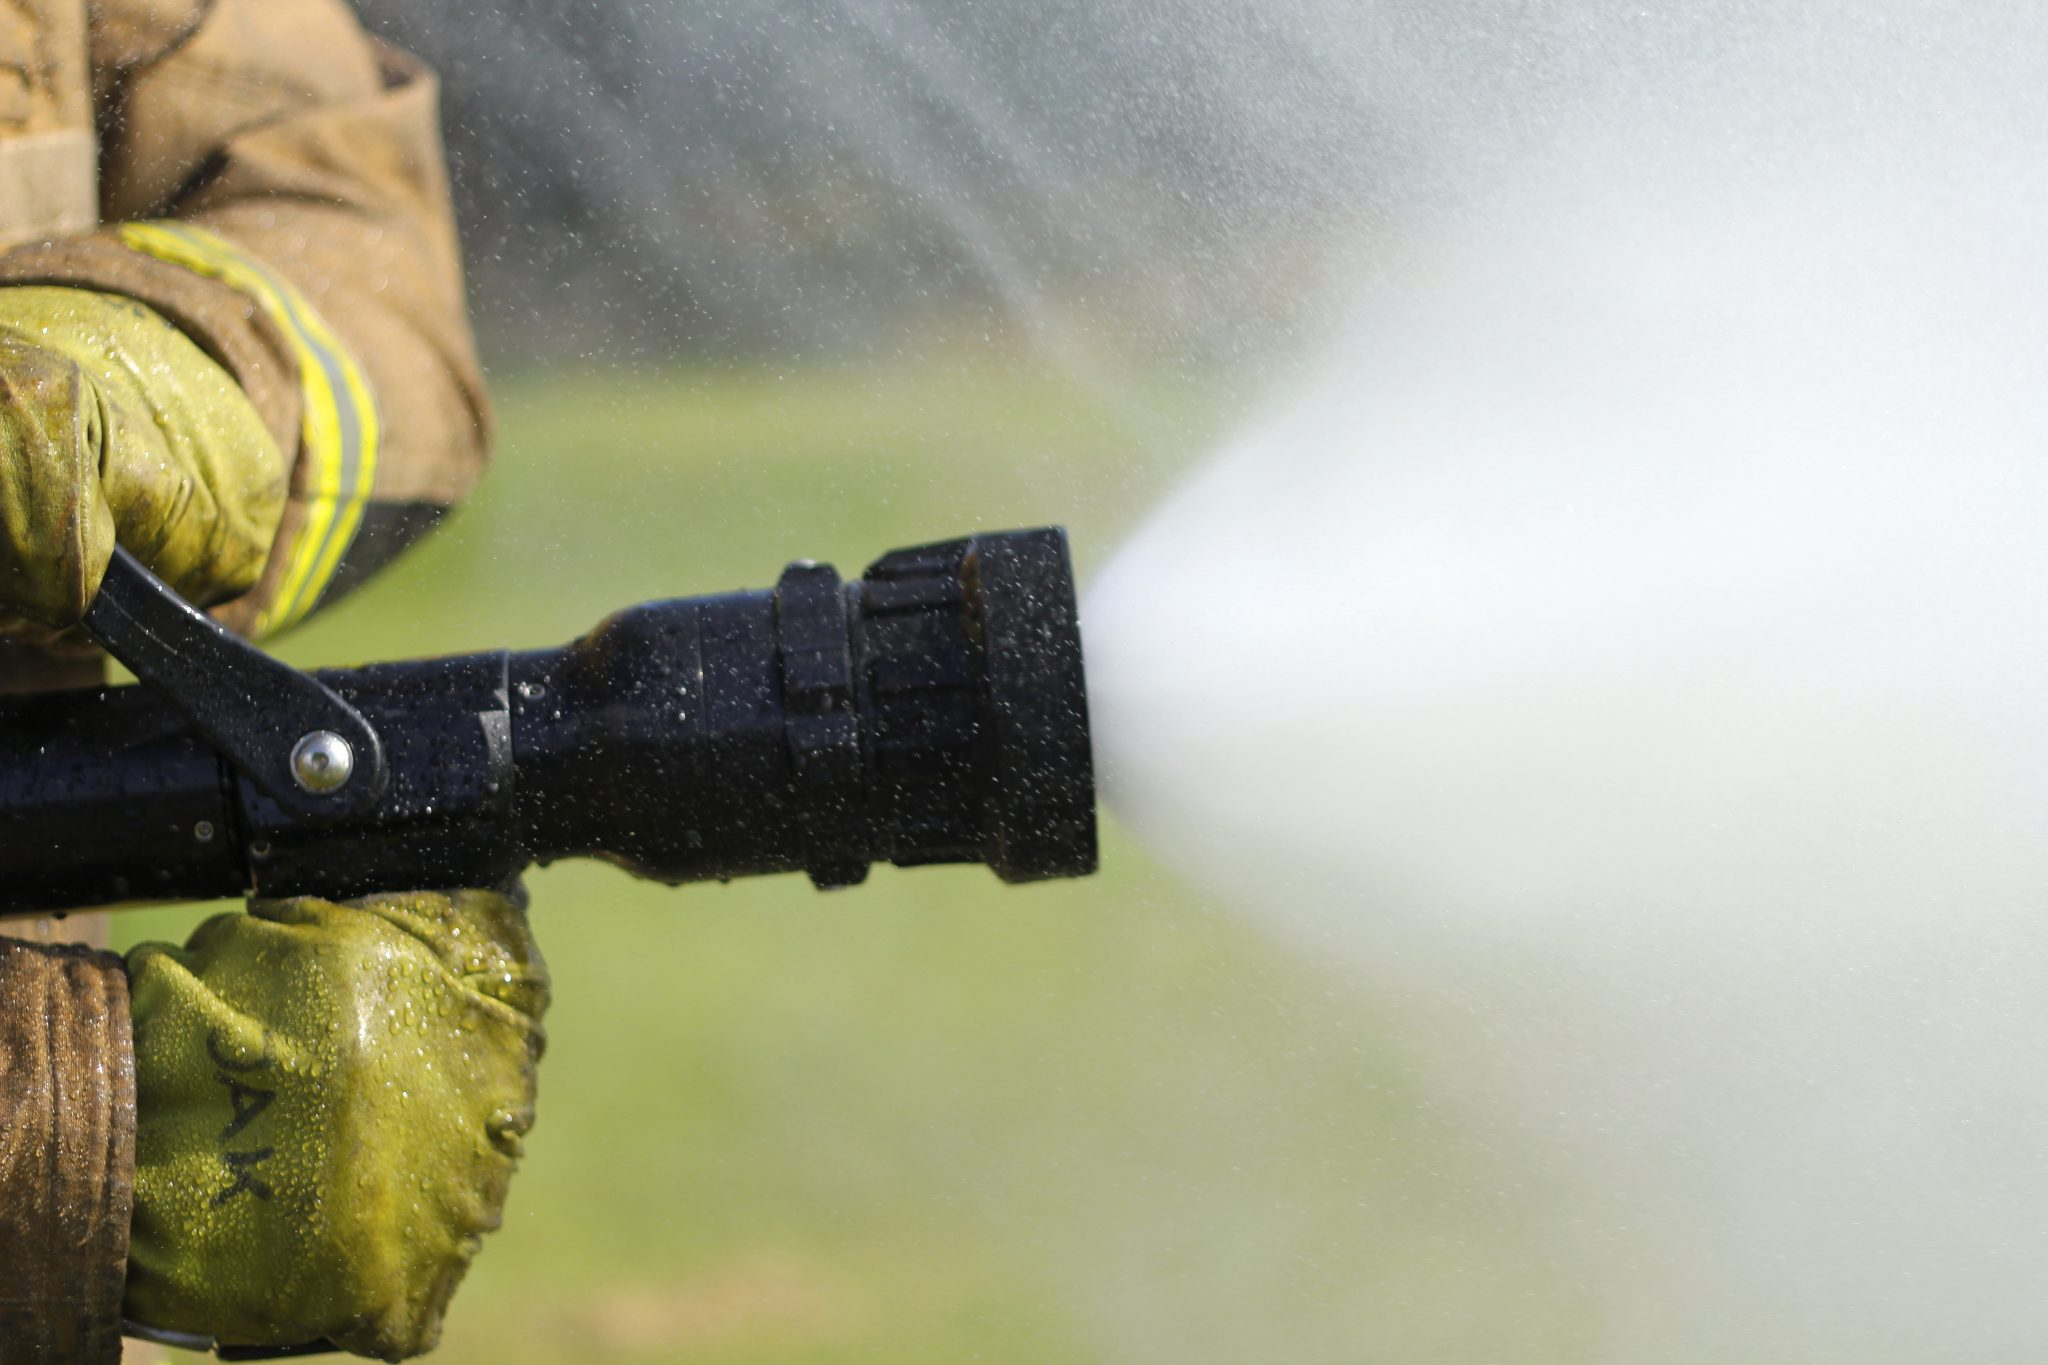 The evolution of the ST15 Mist Nozzle branch by FireBug Company image 1